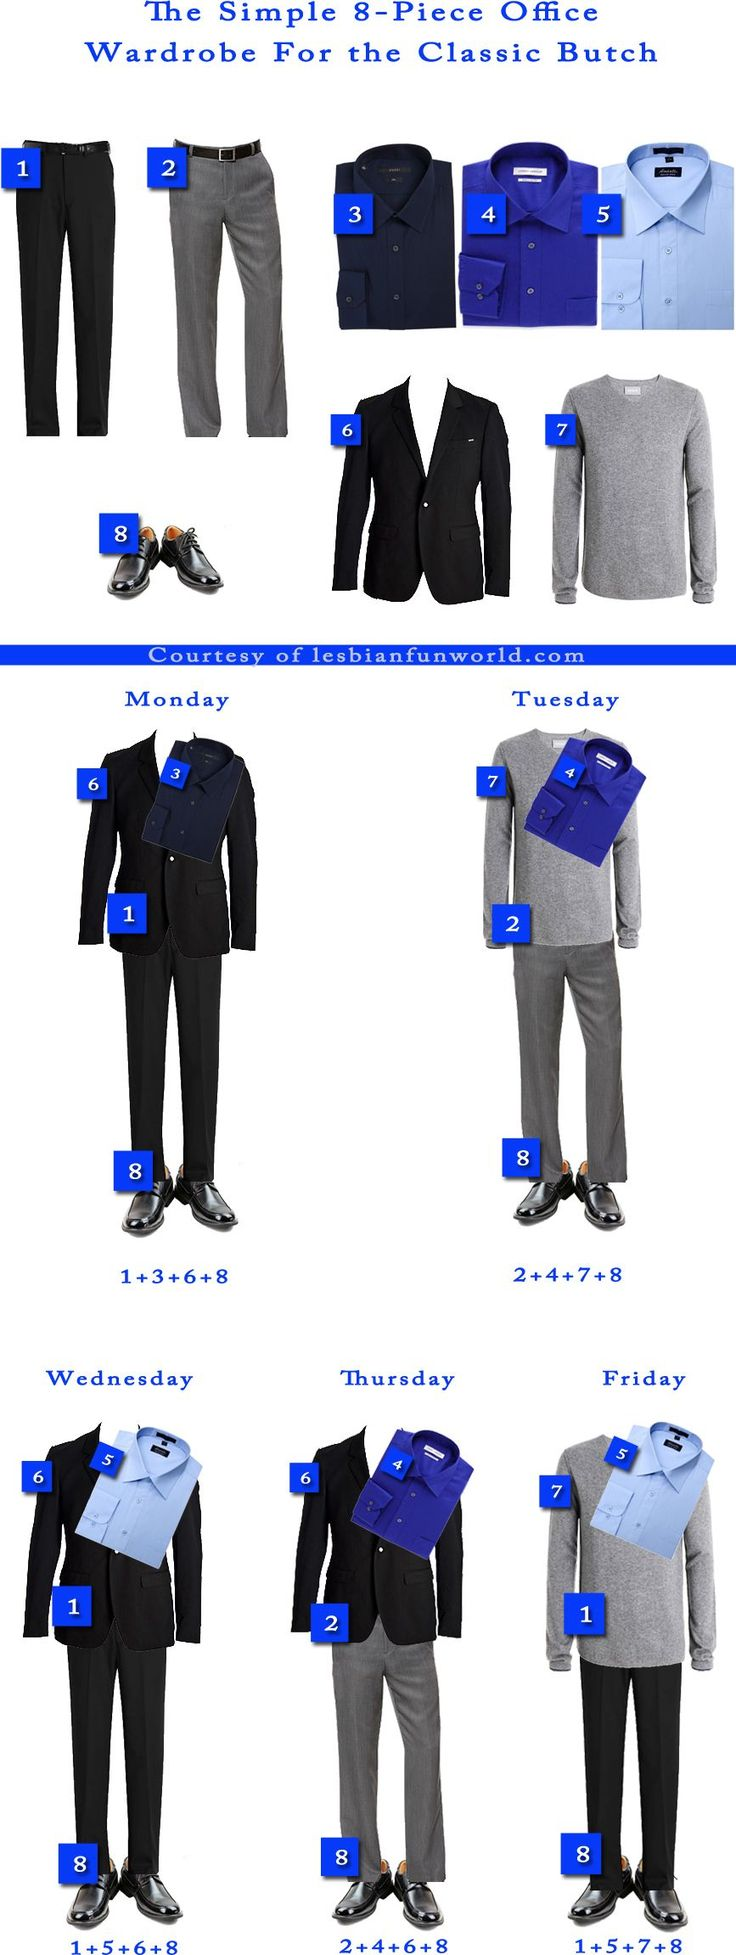 The Simple 8-Piece Office Wardrobe For the Classic Butch. It makes dressing dead simple and I am always dressed professionally. You MUST hem your pants: it's worth the money. Buy shirts that fit: men's shirts have arm lengths. Go for no-iron shirts and pants for easy laundry. Leave your shoes in the office every night to keep them looking good. I took photos of myself in each outfit and taped it inside my wardrobe so I can see what I am going to wear and what I will look like every day.